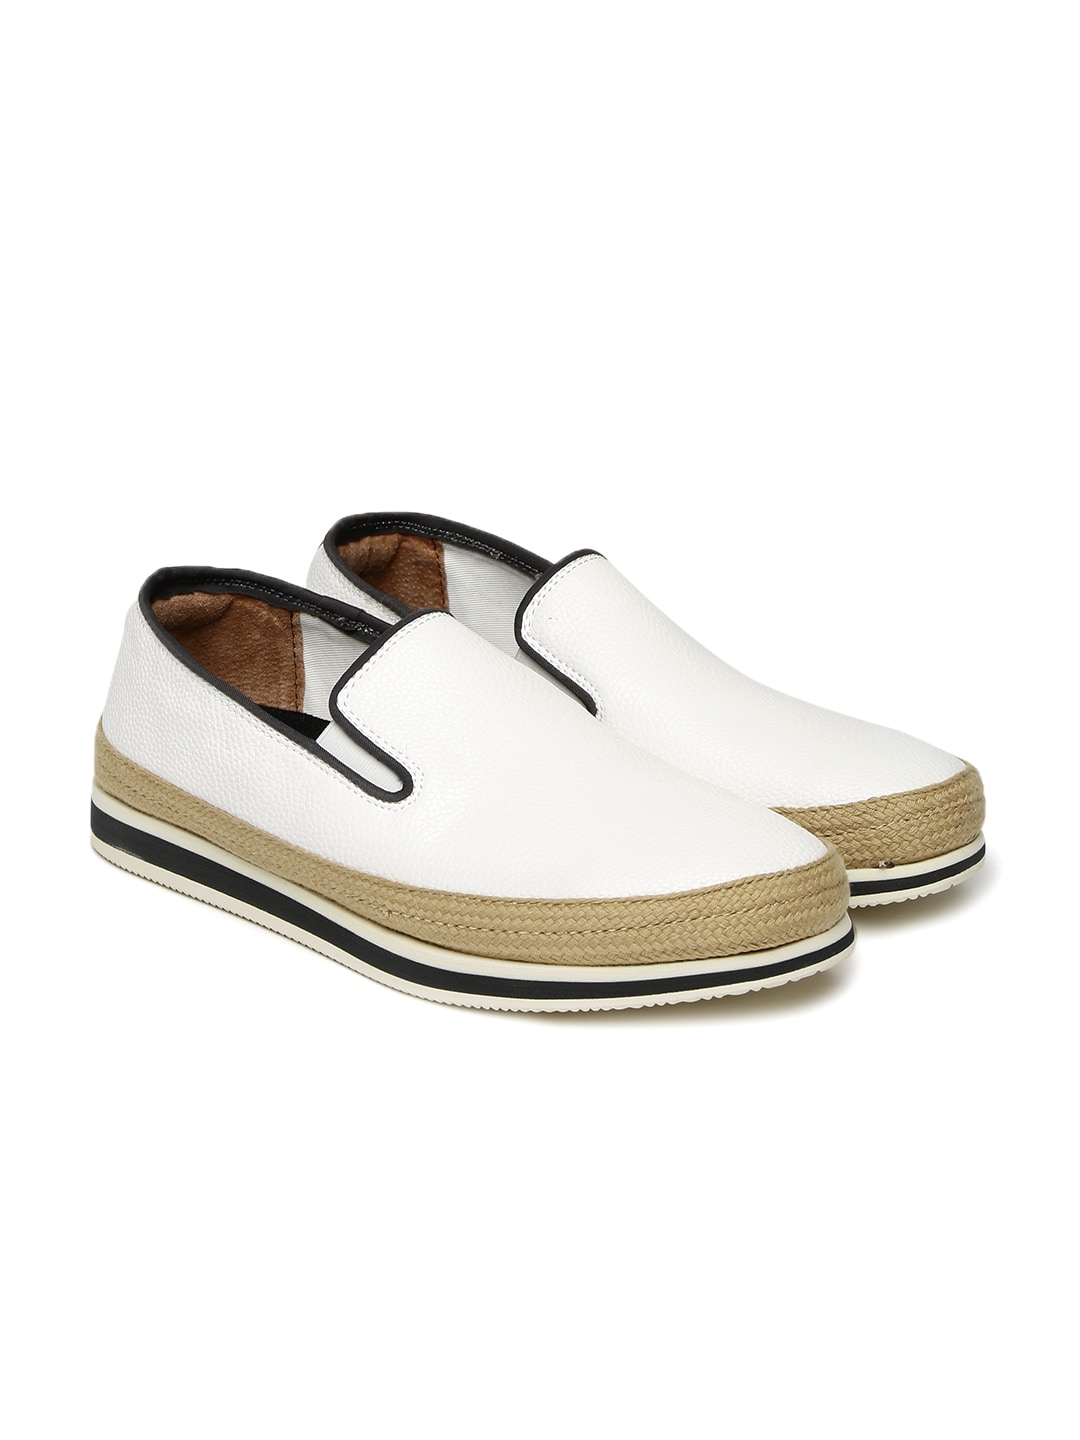 3ec21be32c8c White Shoes - Buy White Shoes Online in India